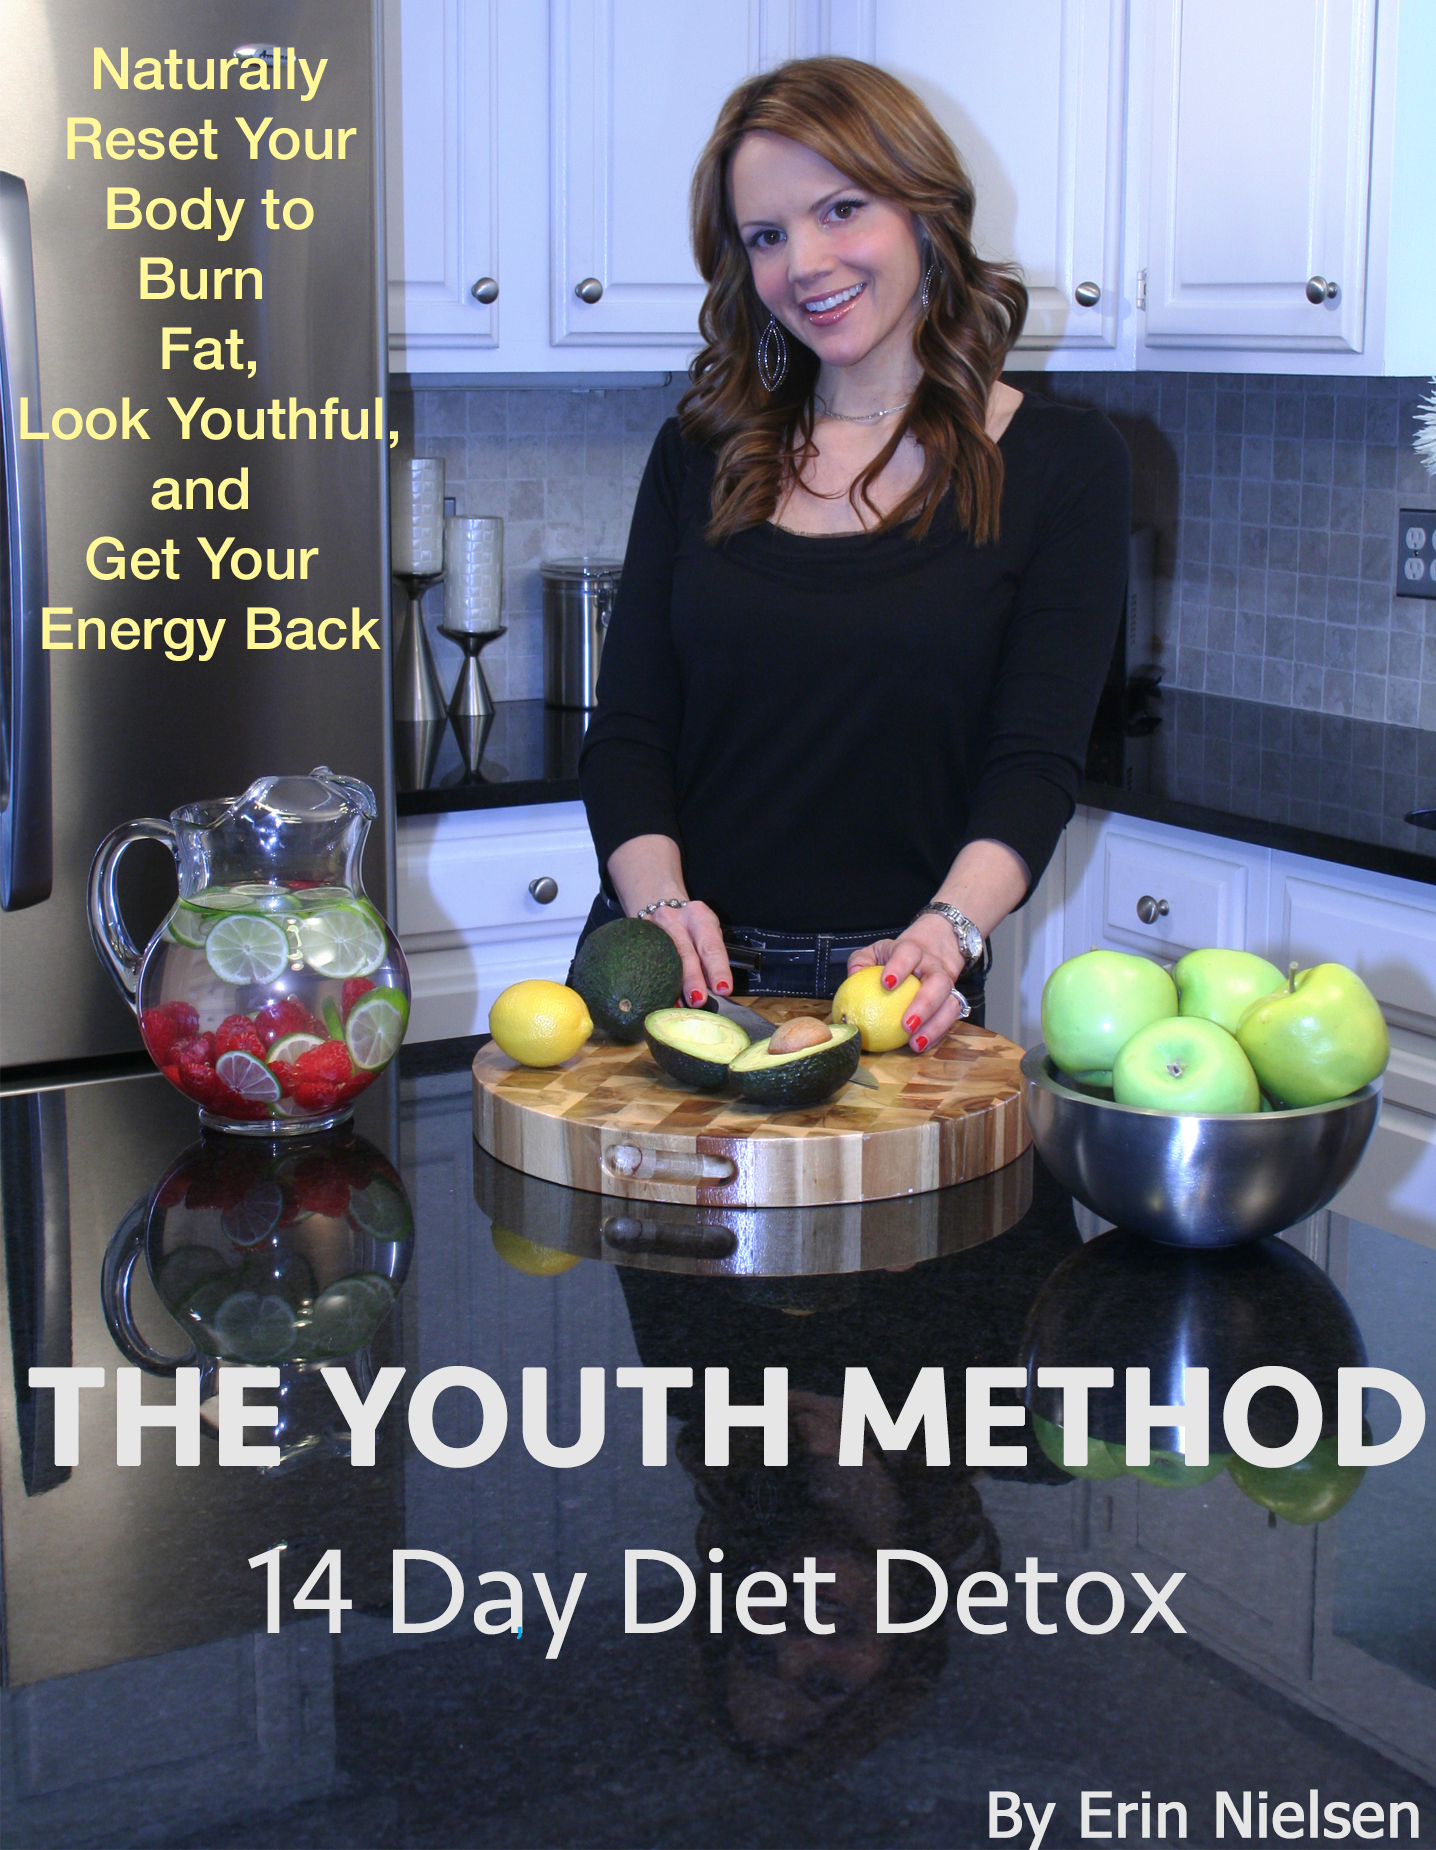 14 Day Diet Detox - The Youth Method